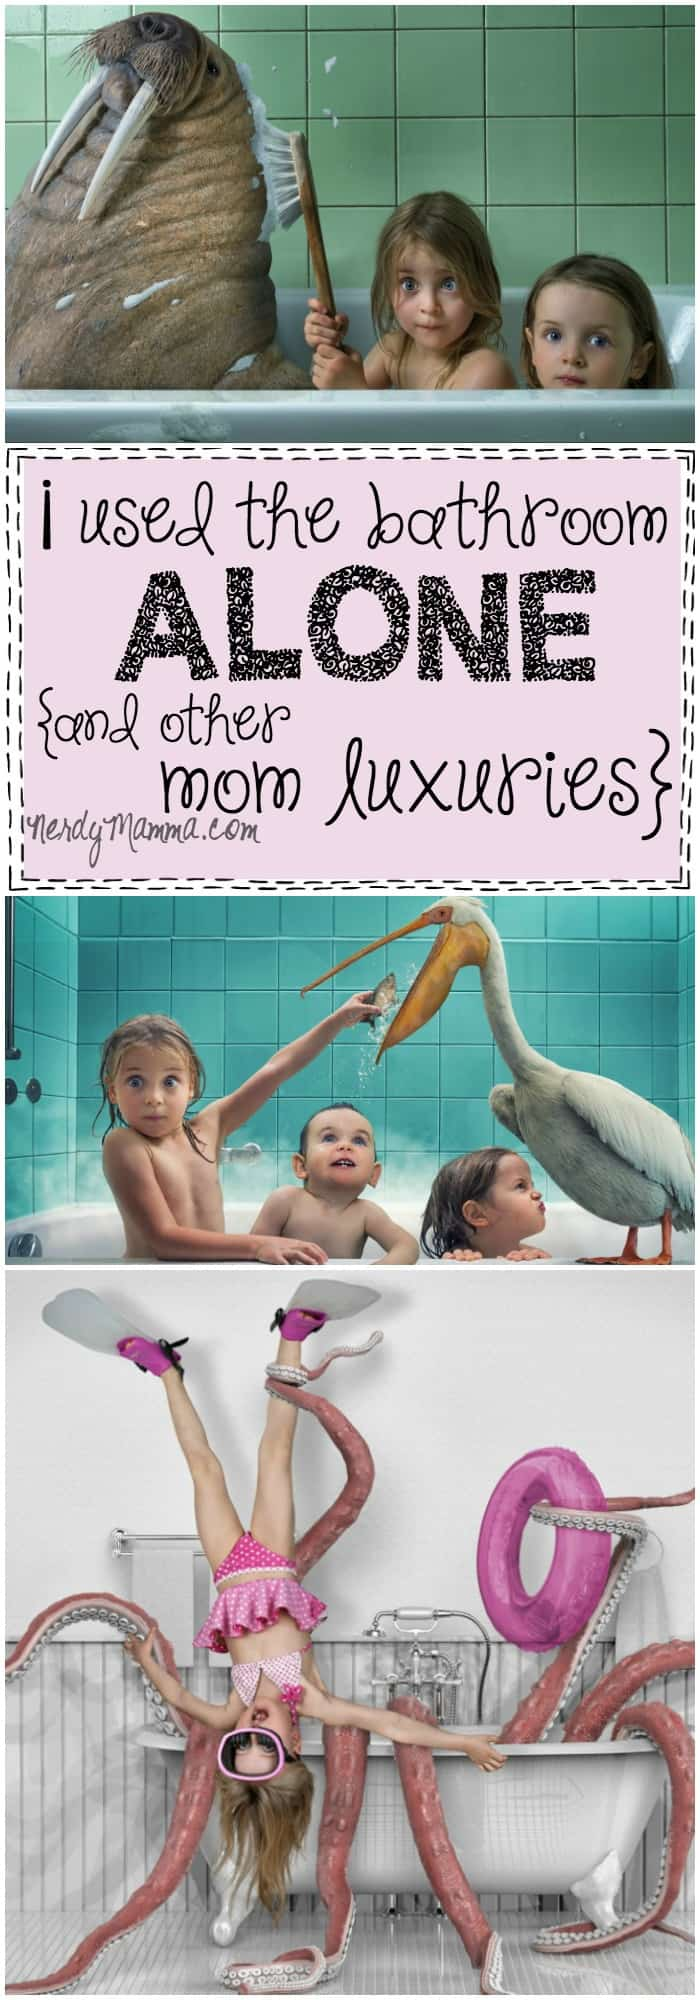 Guess what! I used the bathroom alone today! And, I got some other mom luxuries, too. This parenting humor...best. ever.